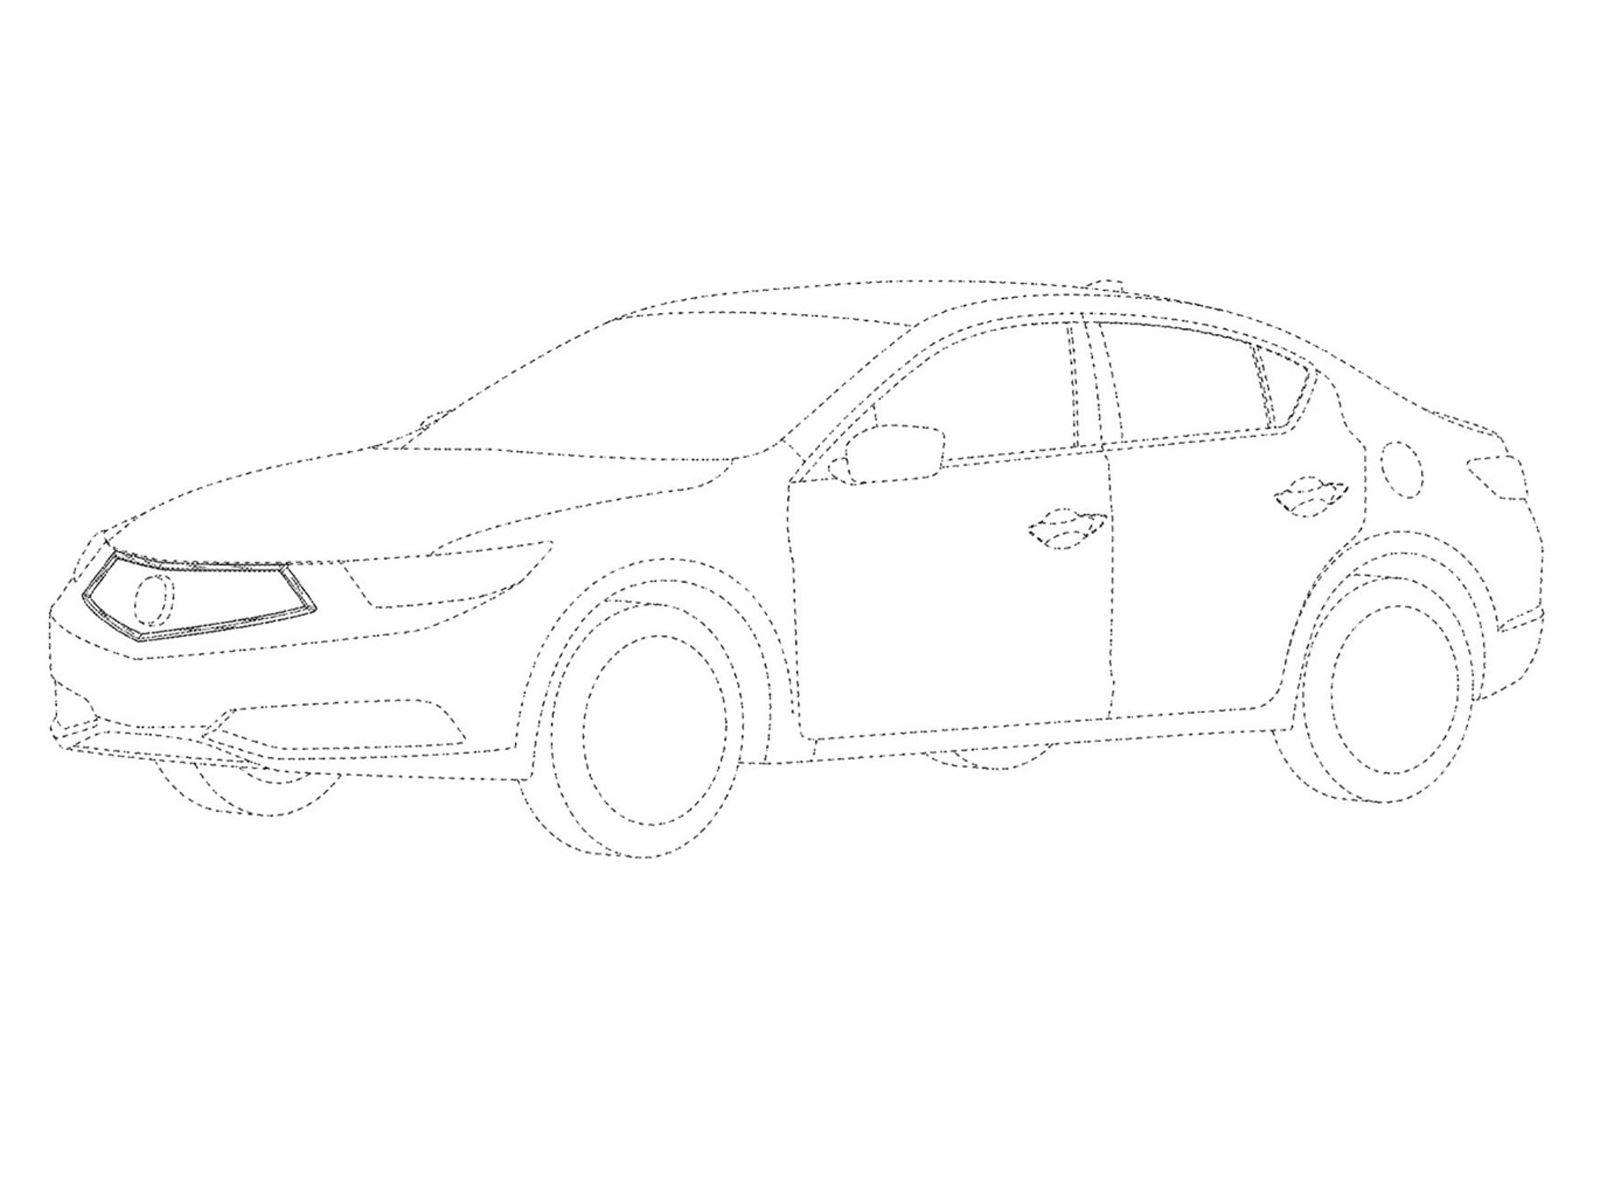 Leaked Acura Ilx Gains New Grille And Freshened Look